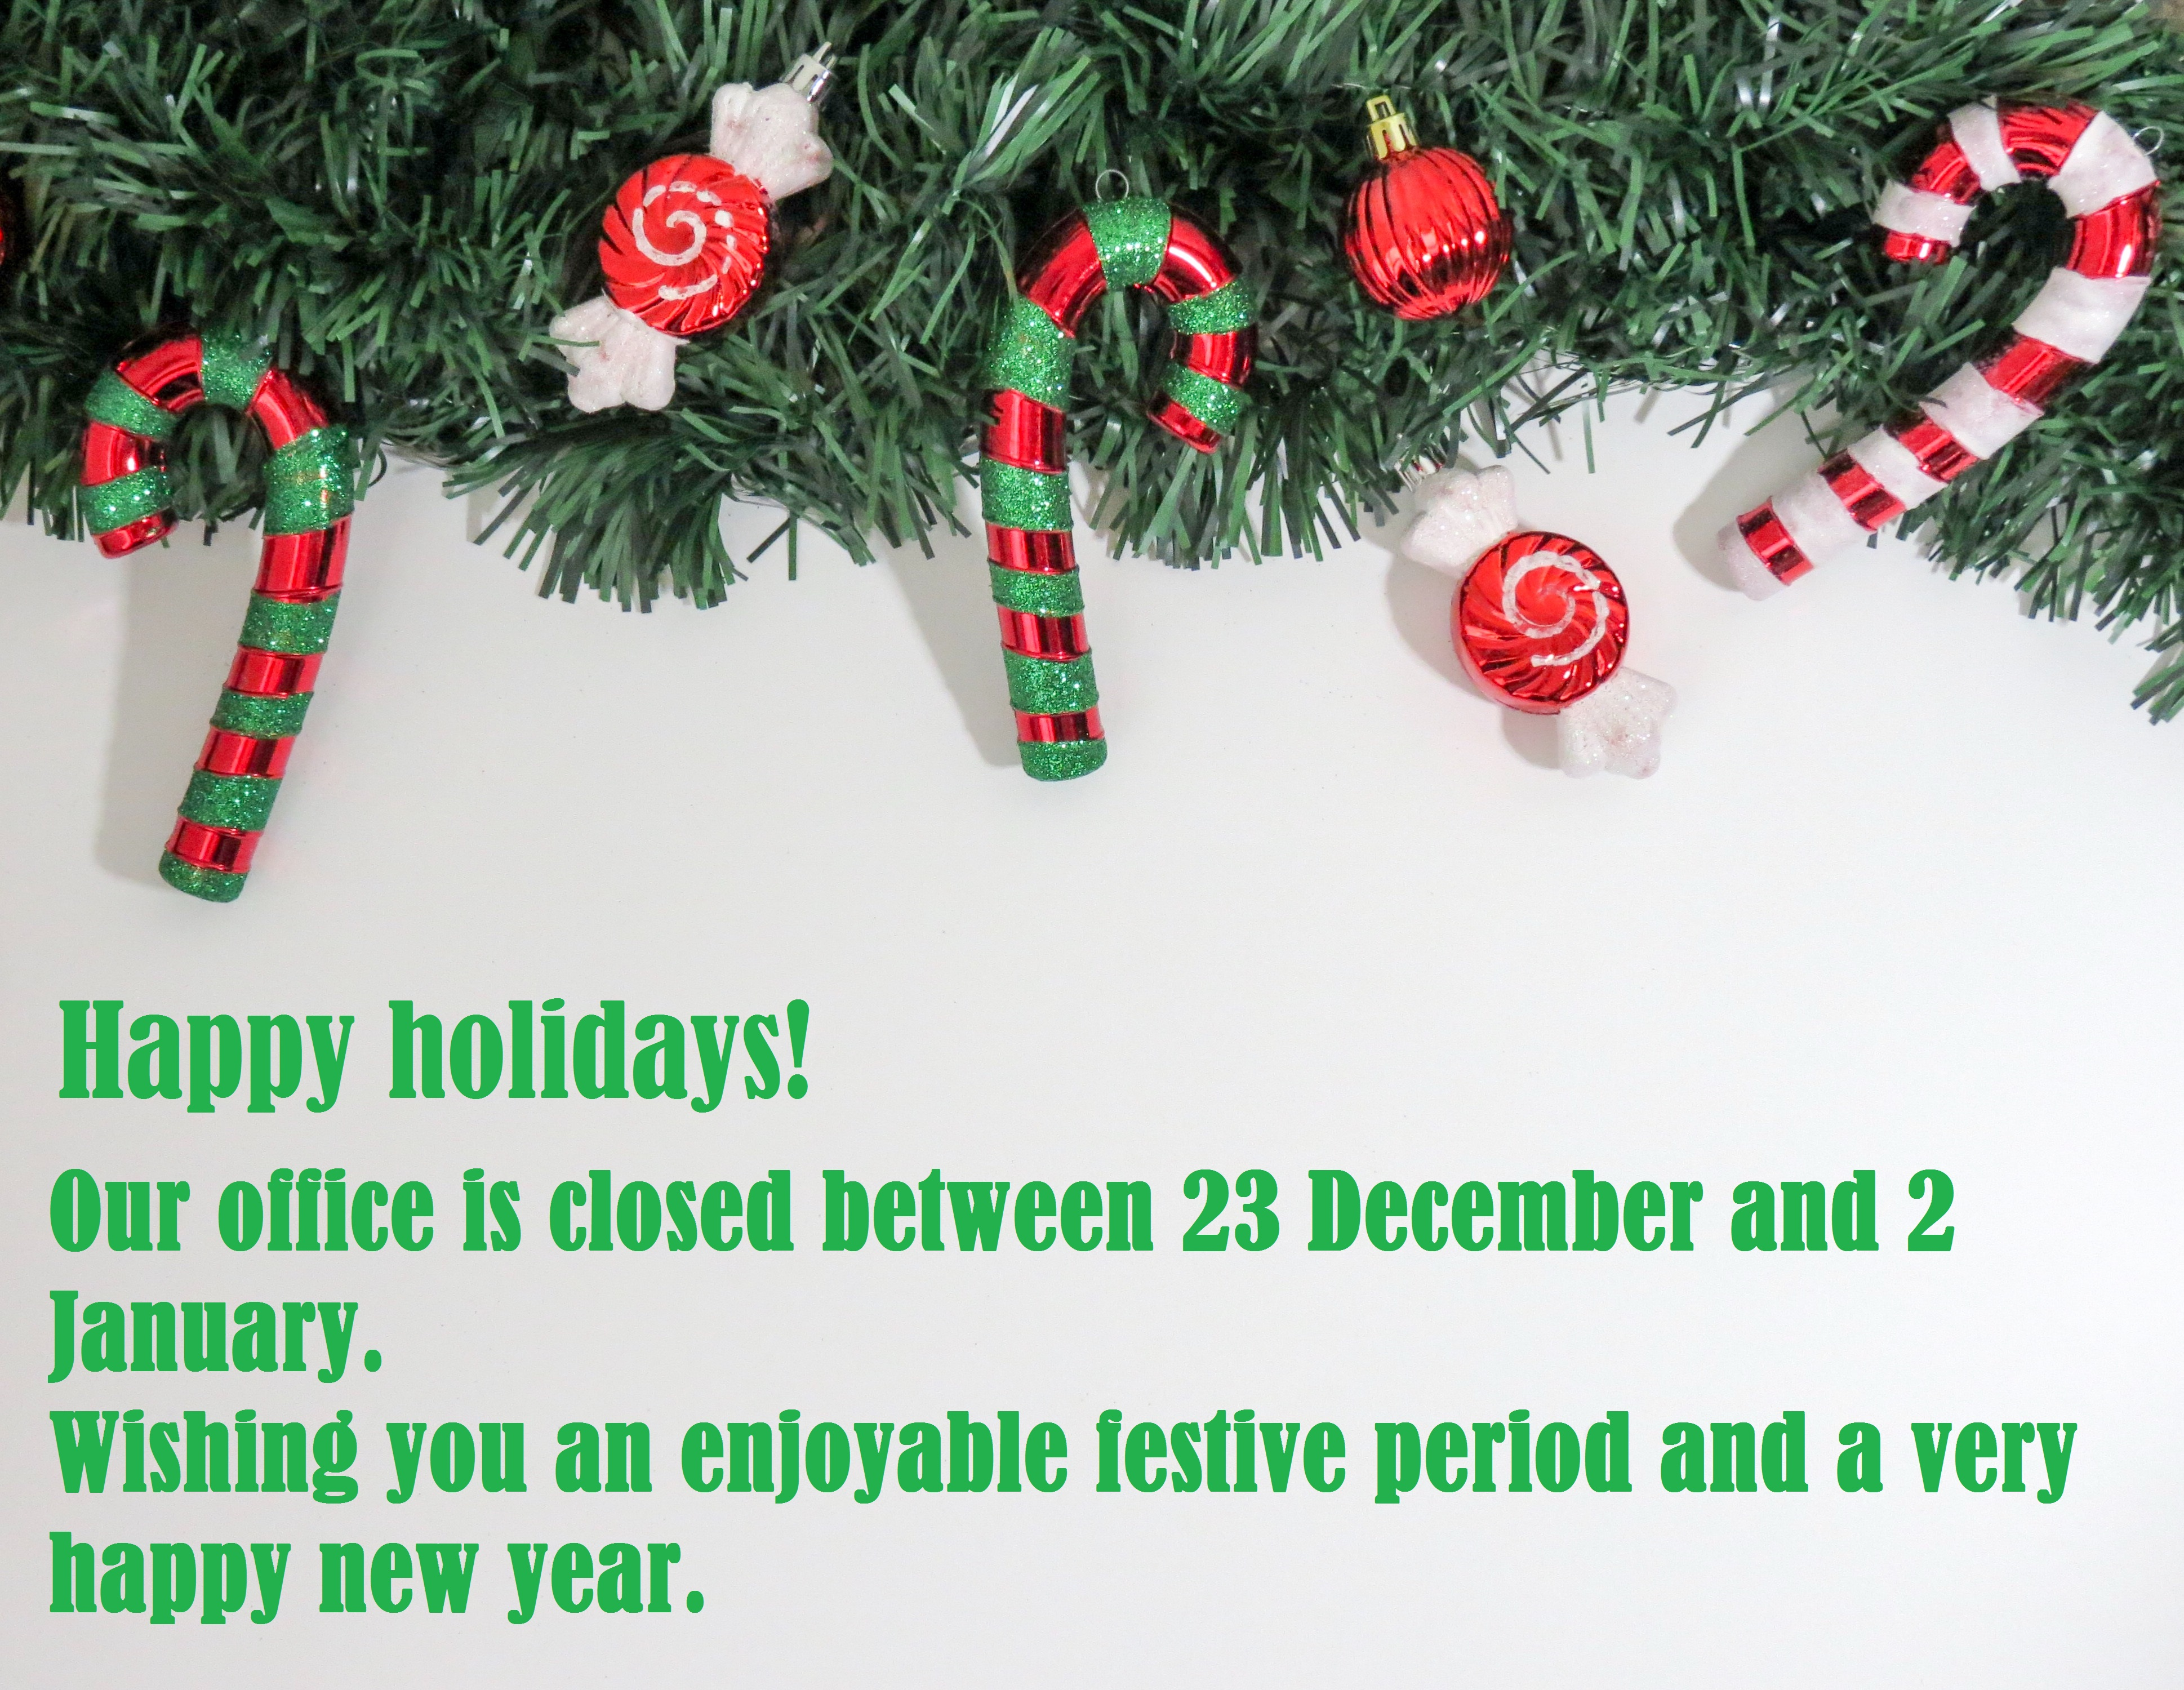 Office closure for Christmas